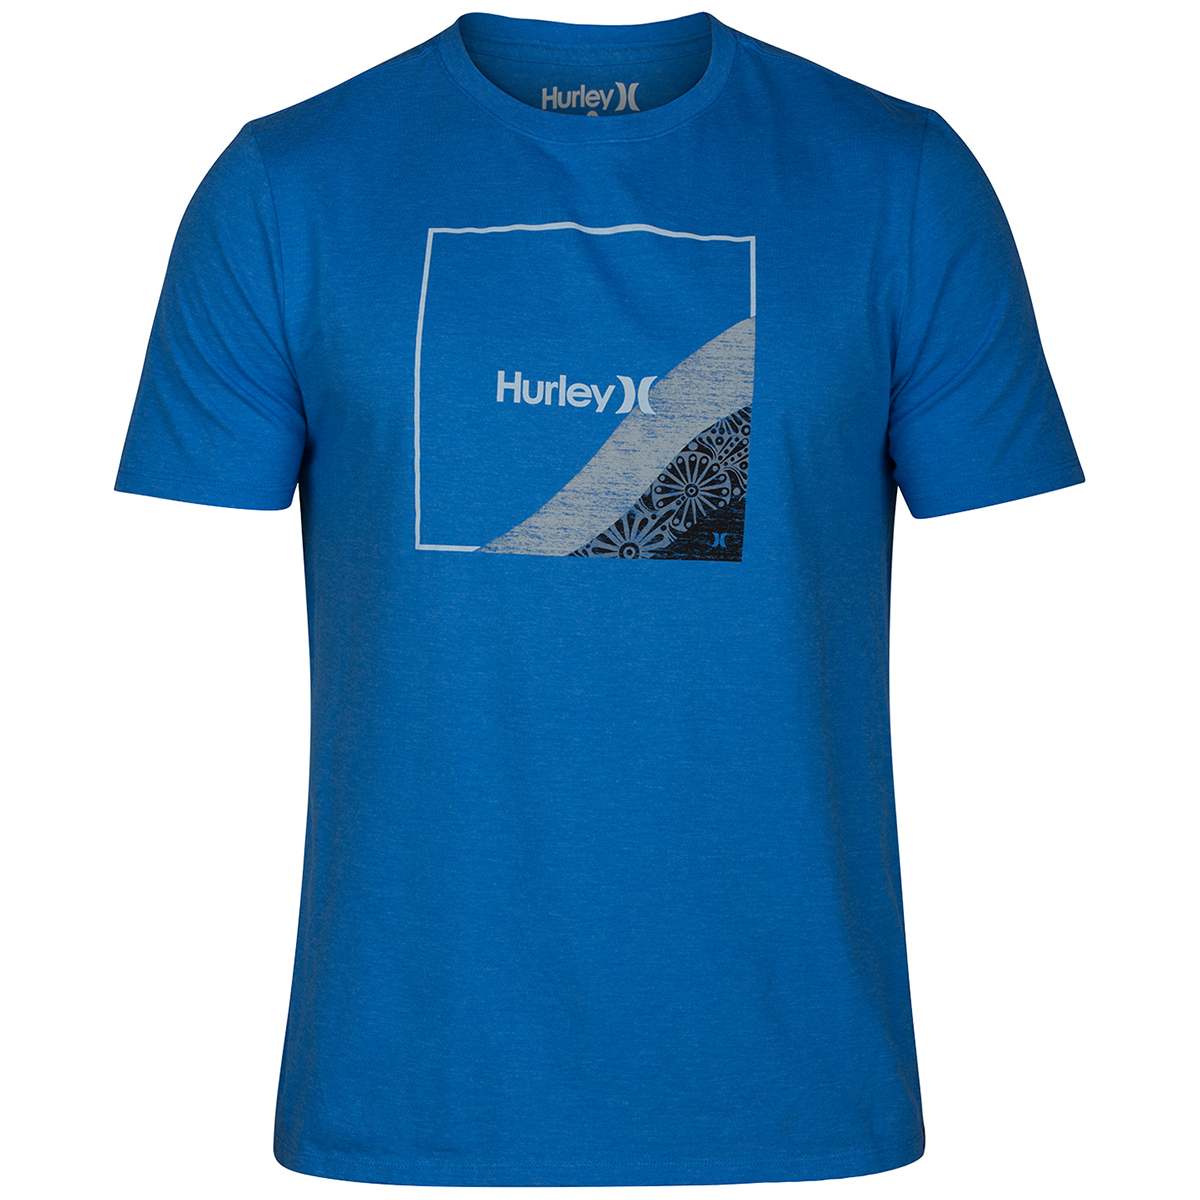 Hurley Young Men's Fader Short-Sleeve T-Shirt - Blue, L